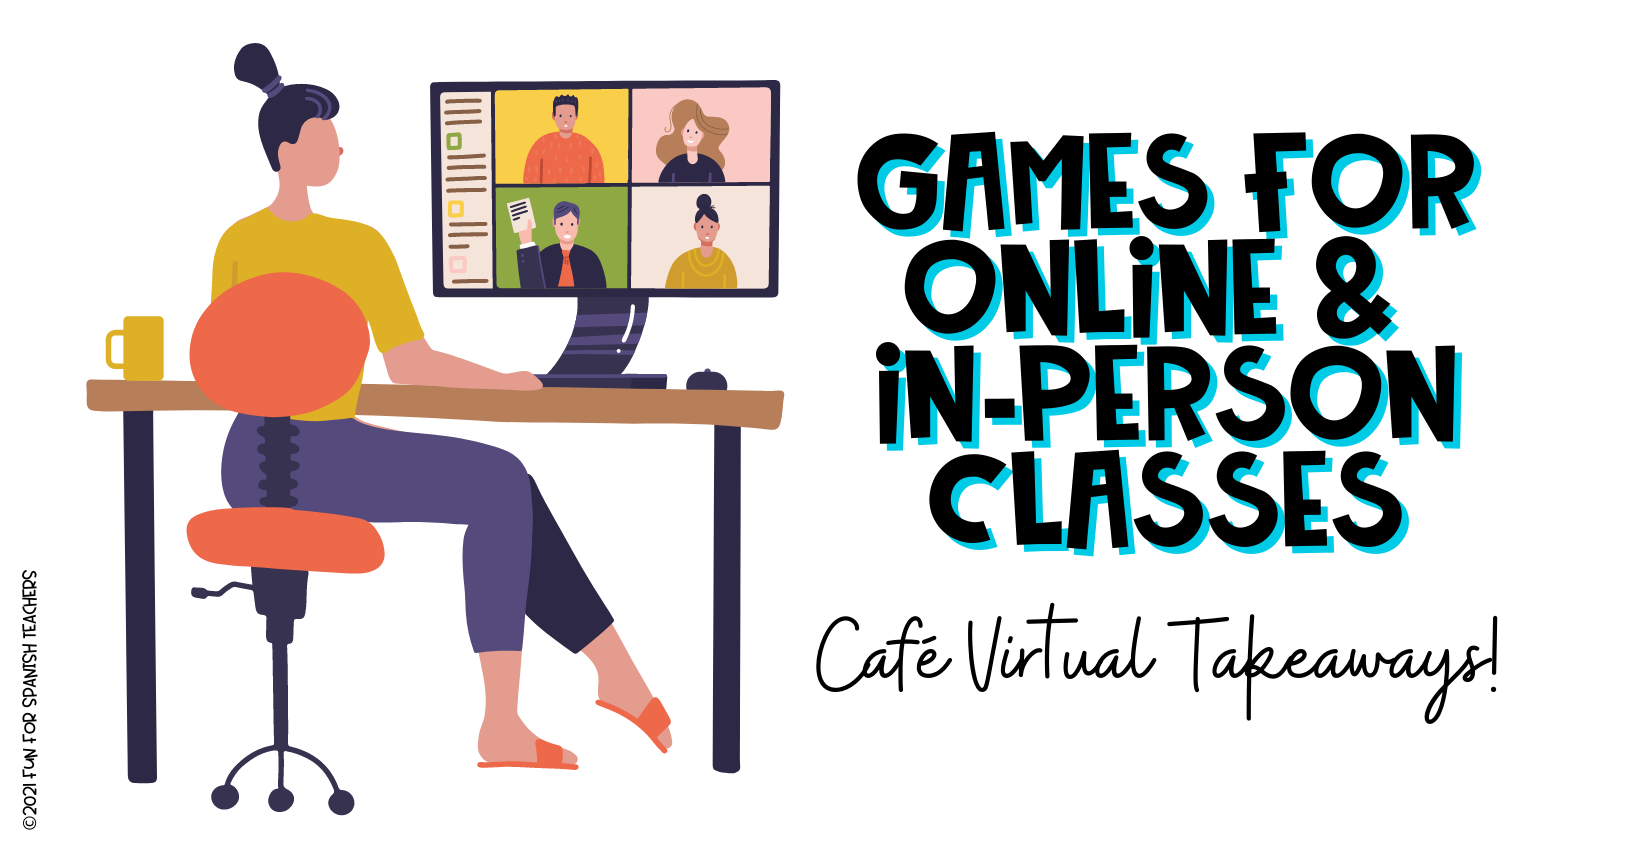 GAMES FOR VIRTUAL AND IN-PERSON CLASSES - VIRTUAL CAFÉ TAKEAWAYS